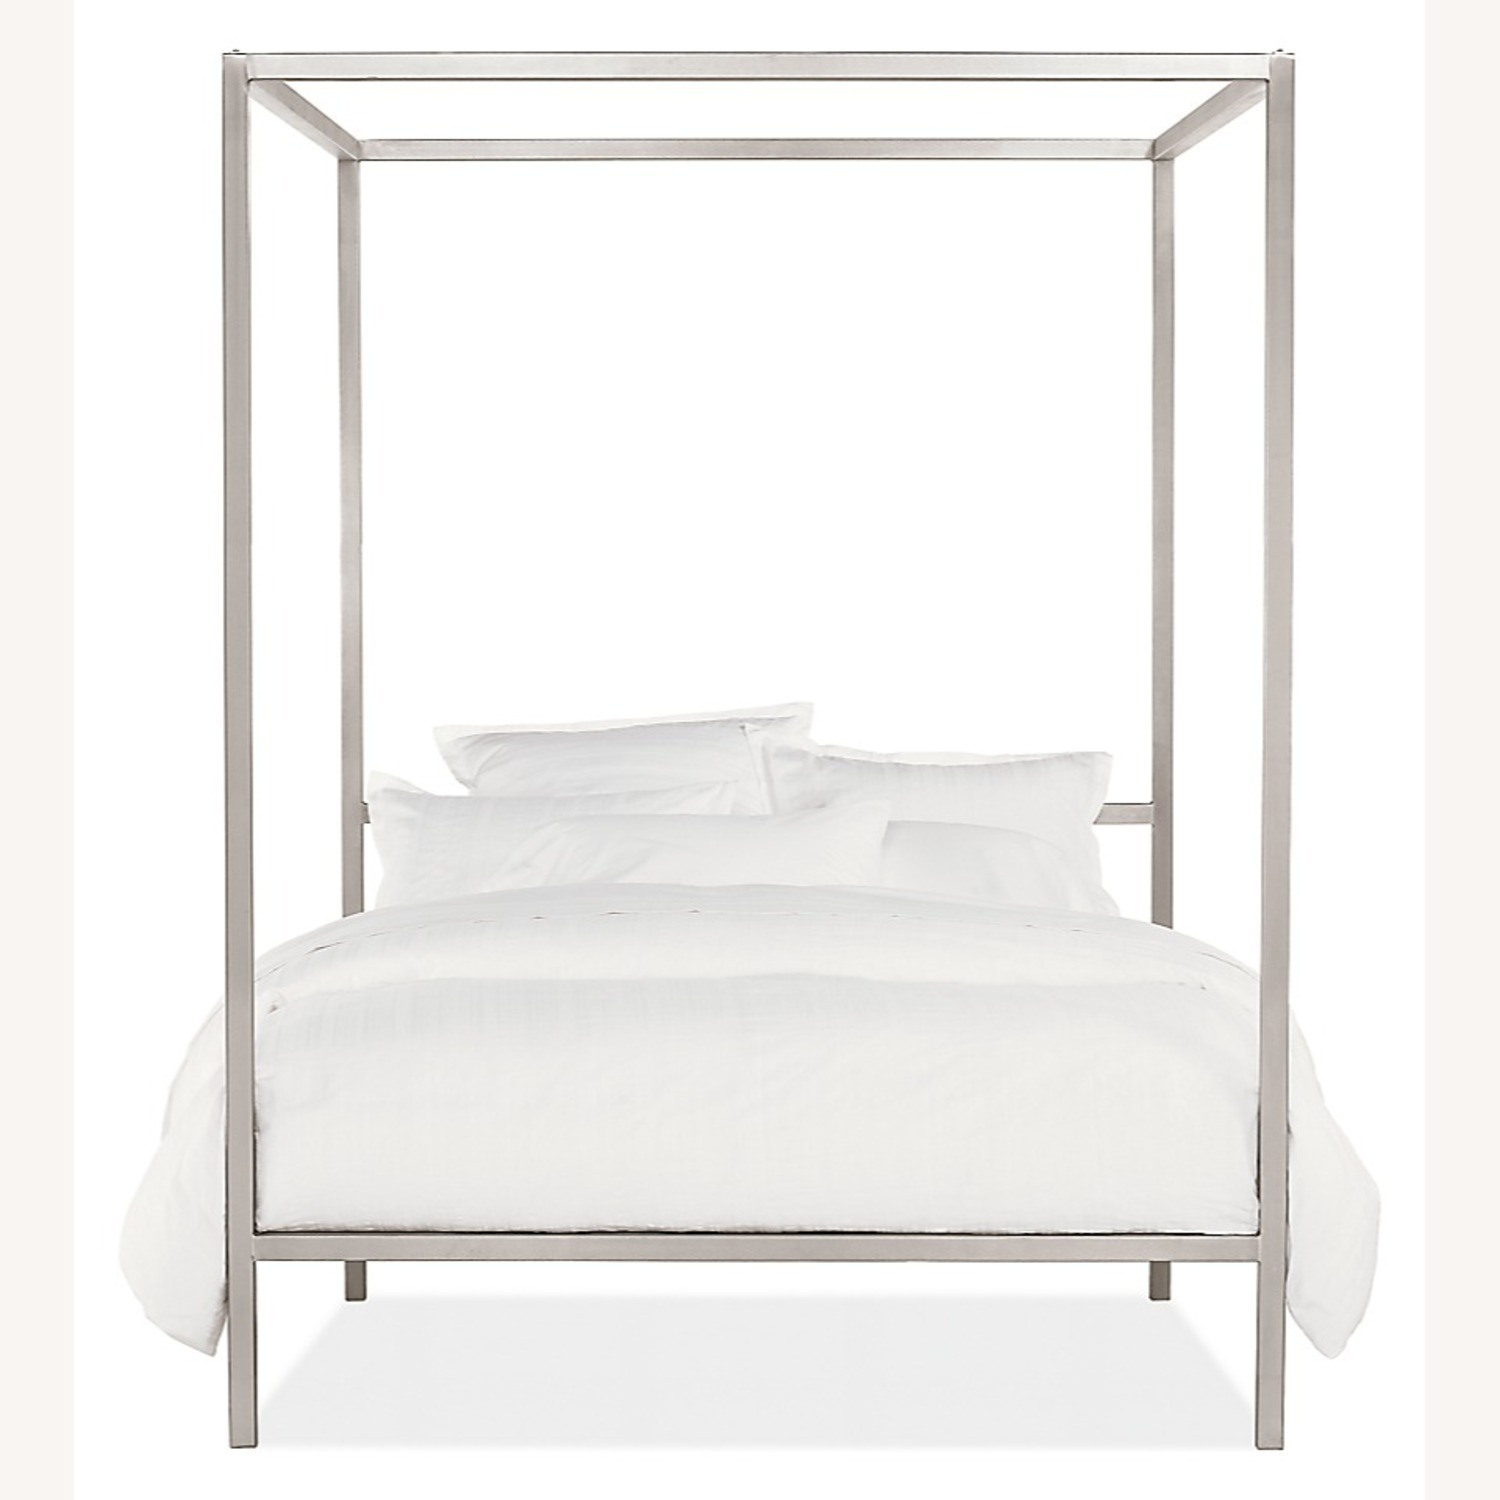 Room & Board Portica Queen Size Canopy Bed - image-1